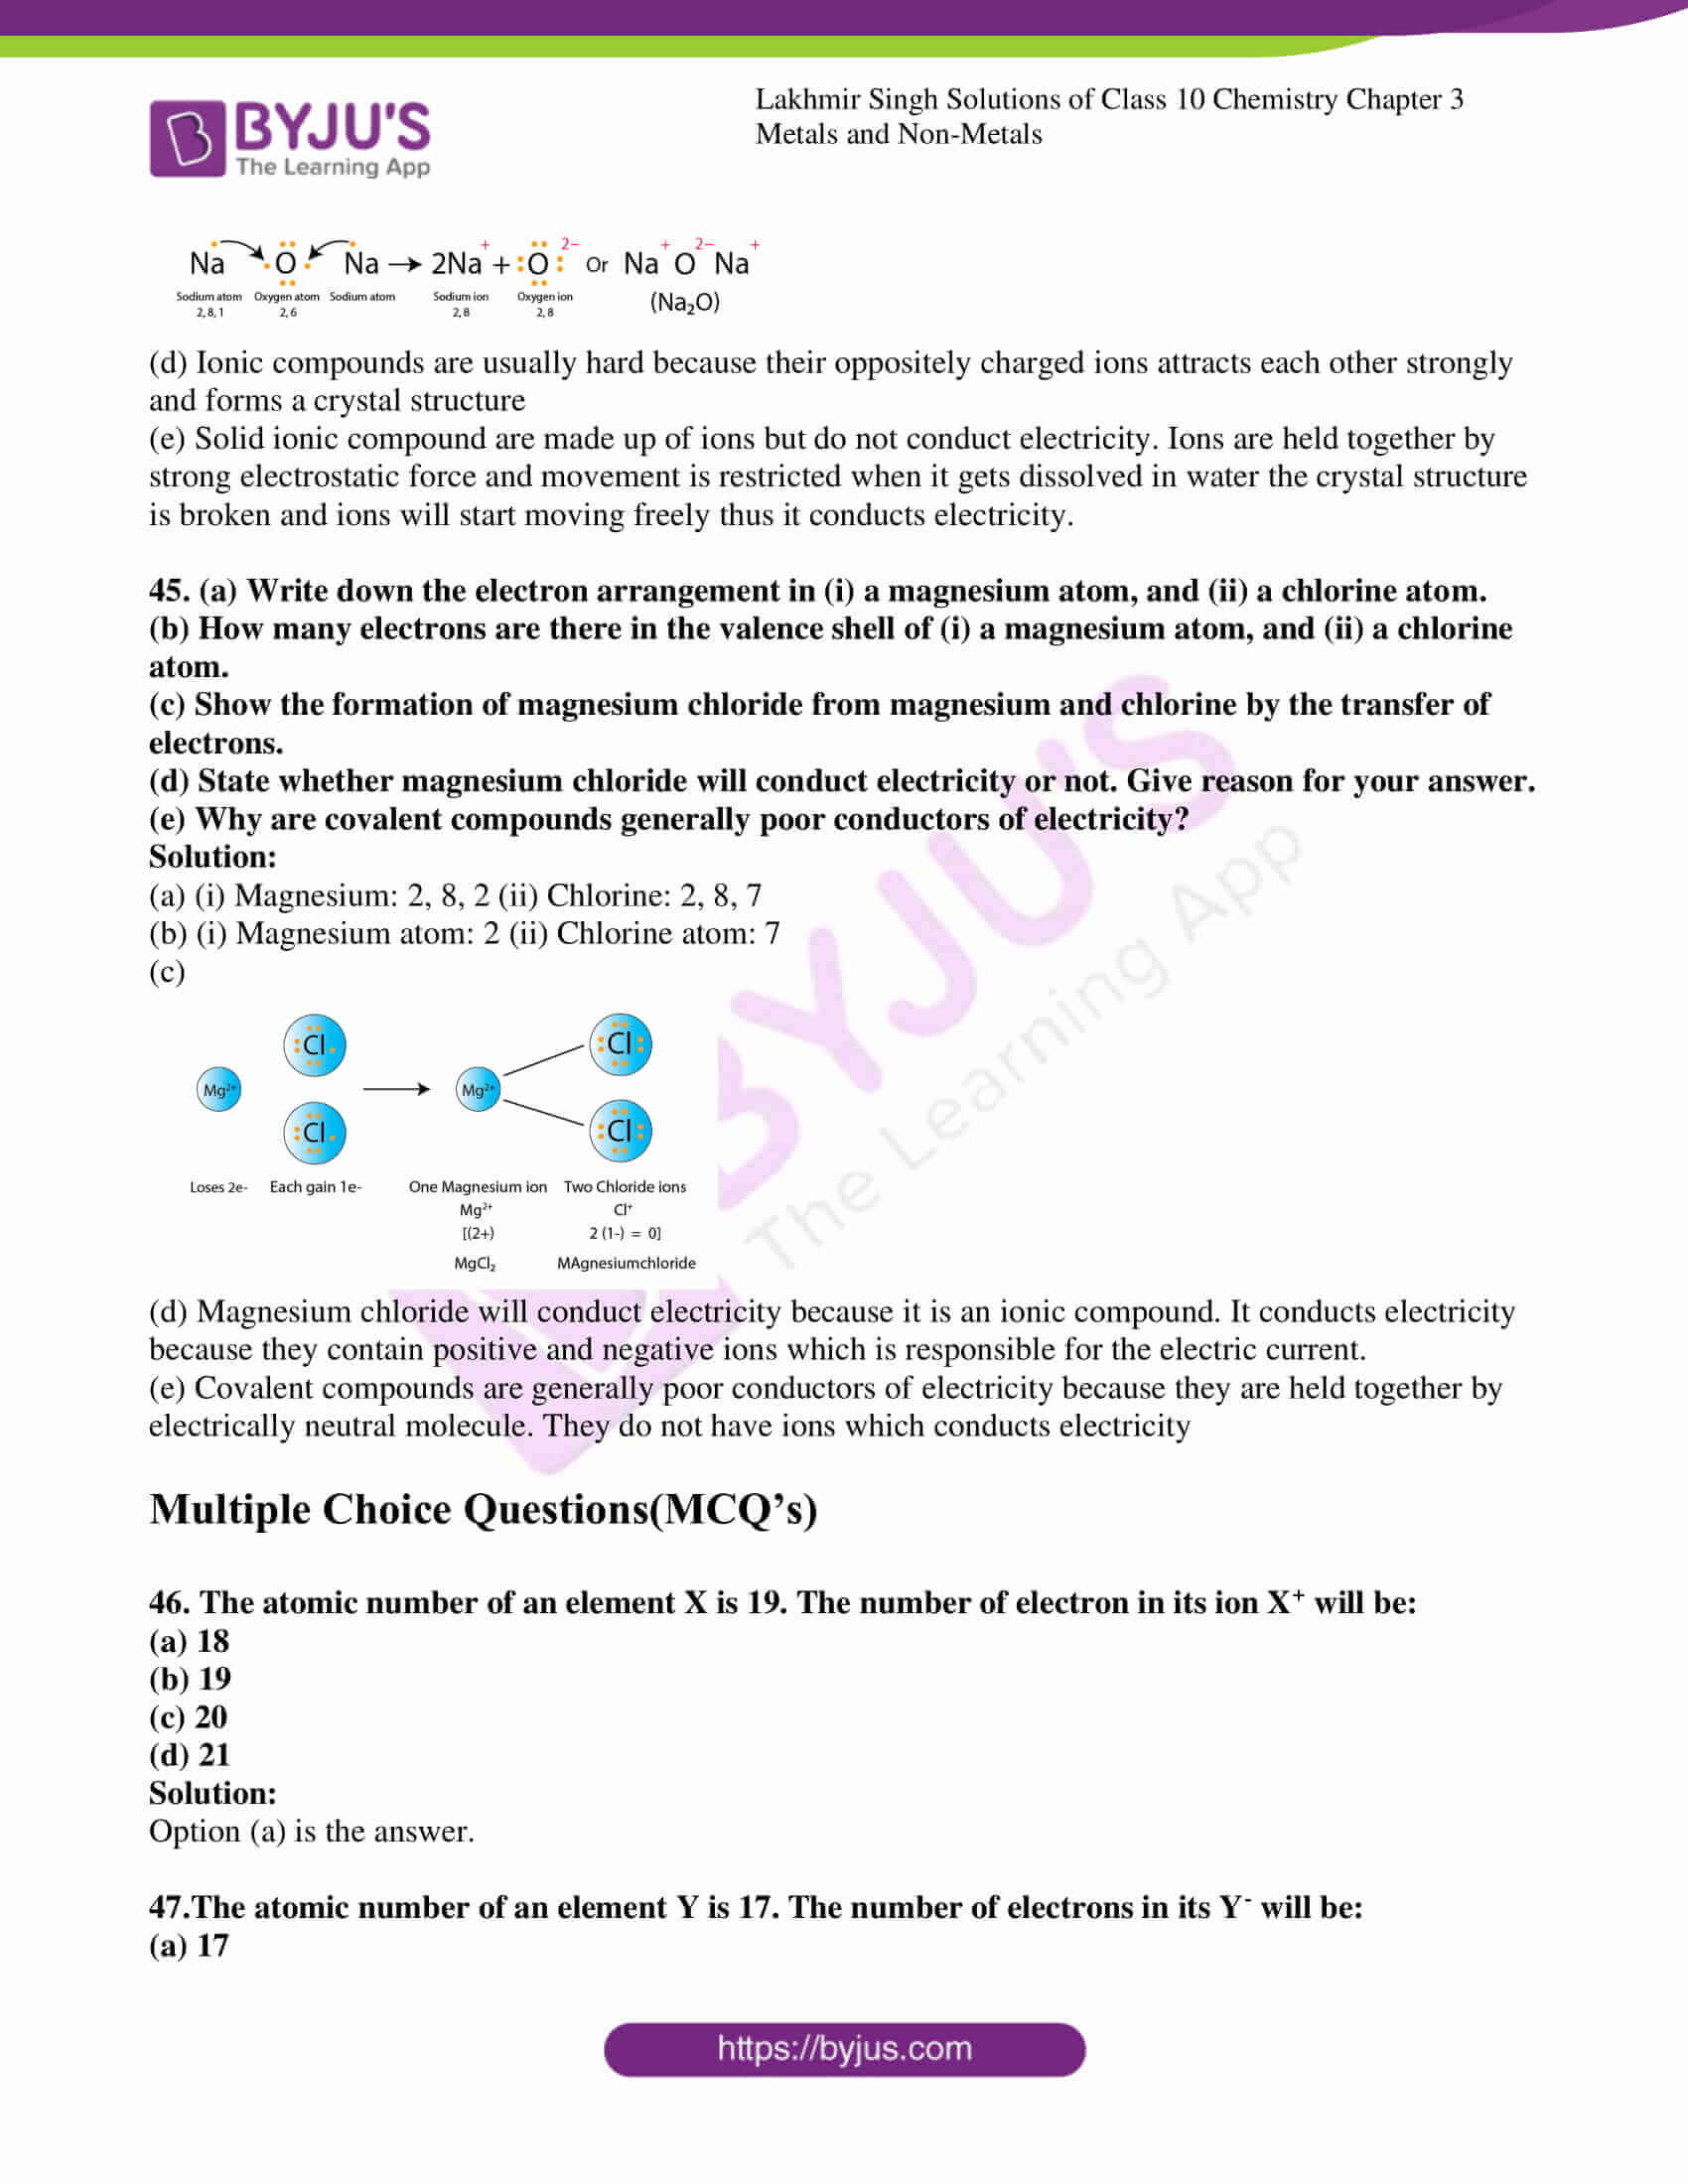 lakhmir singh chemistry class 10 solution for chapter 3 29